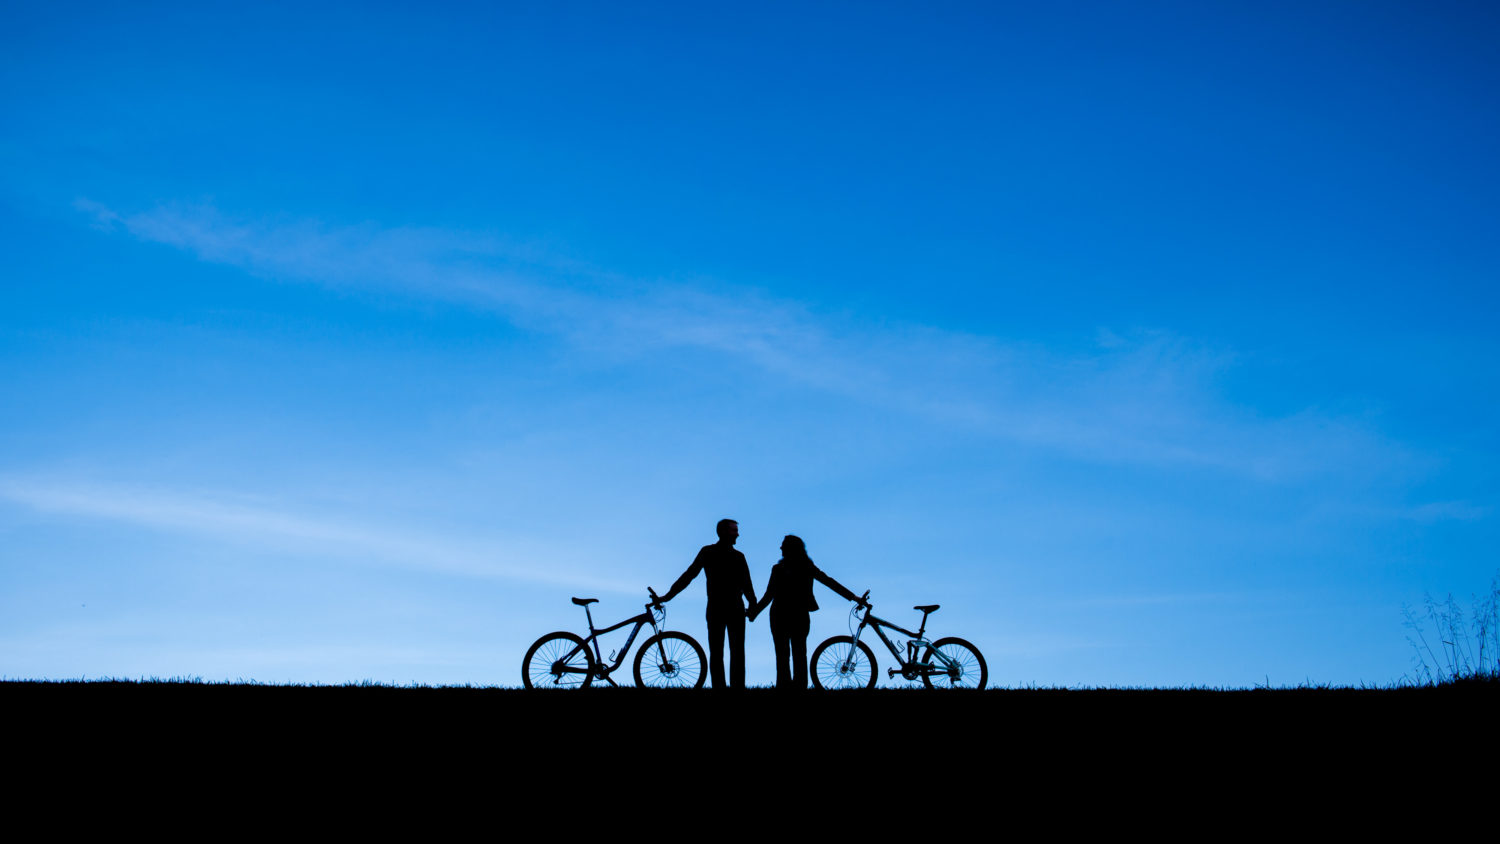 Minimalistic and silhouetted engagement photo with bikes